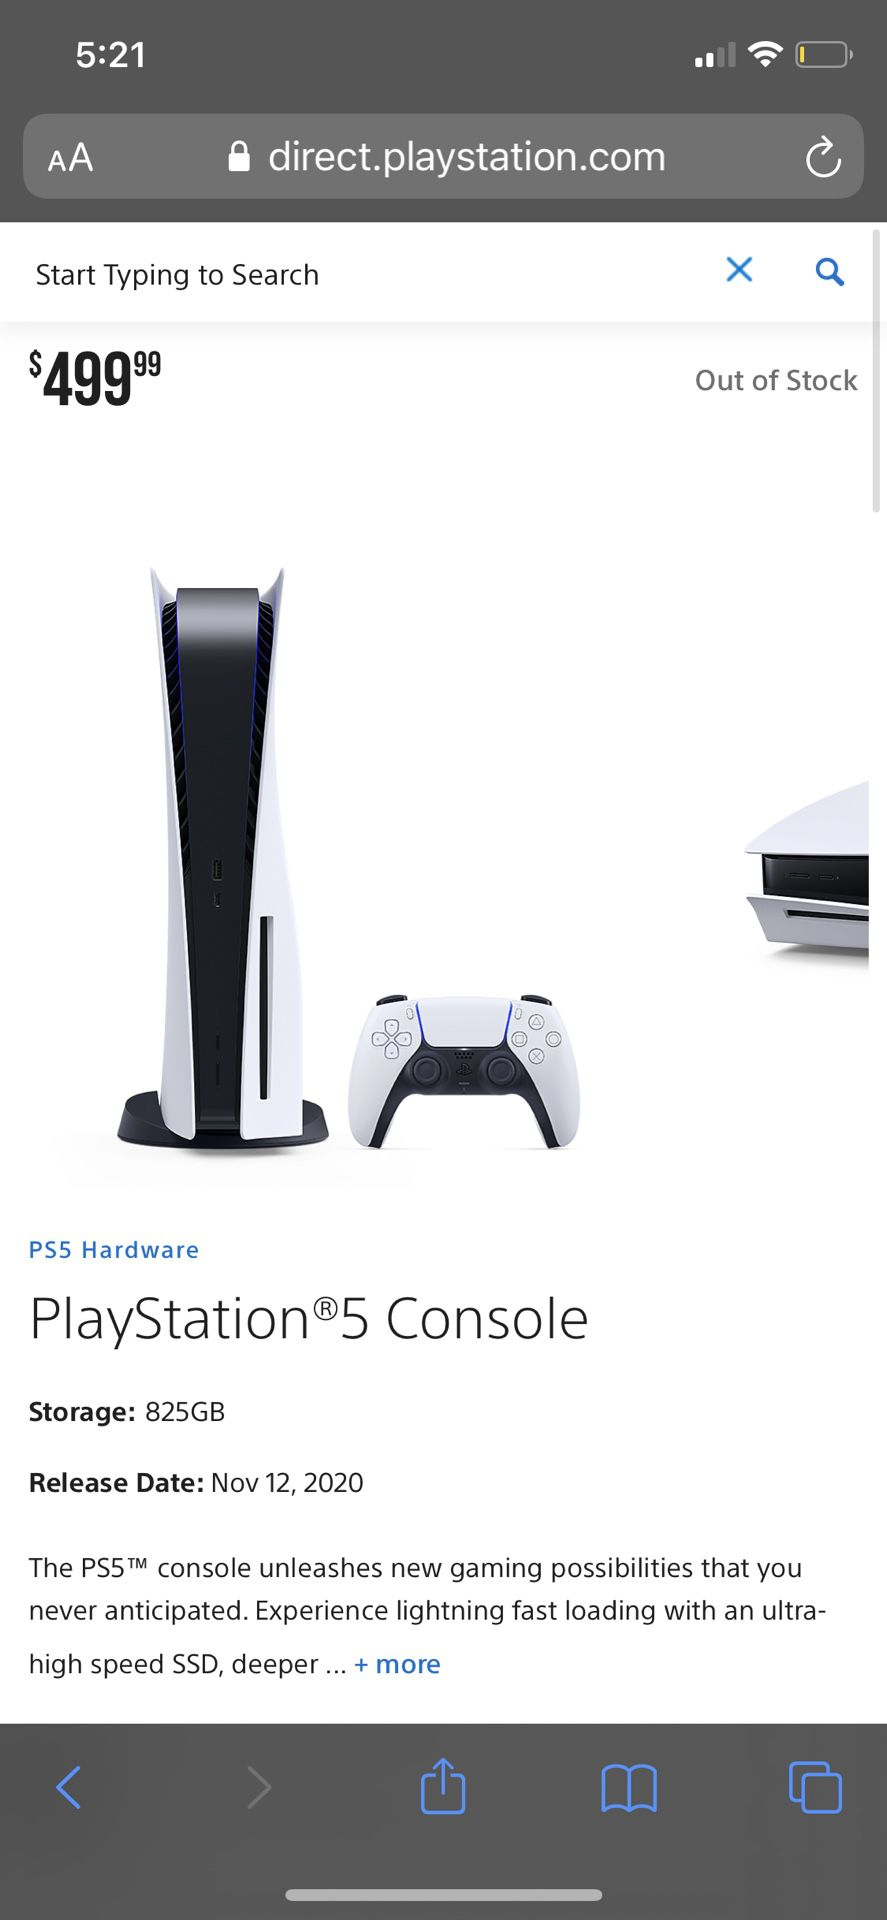 Please read the caption if you have a ps5